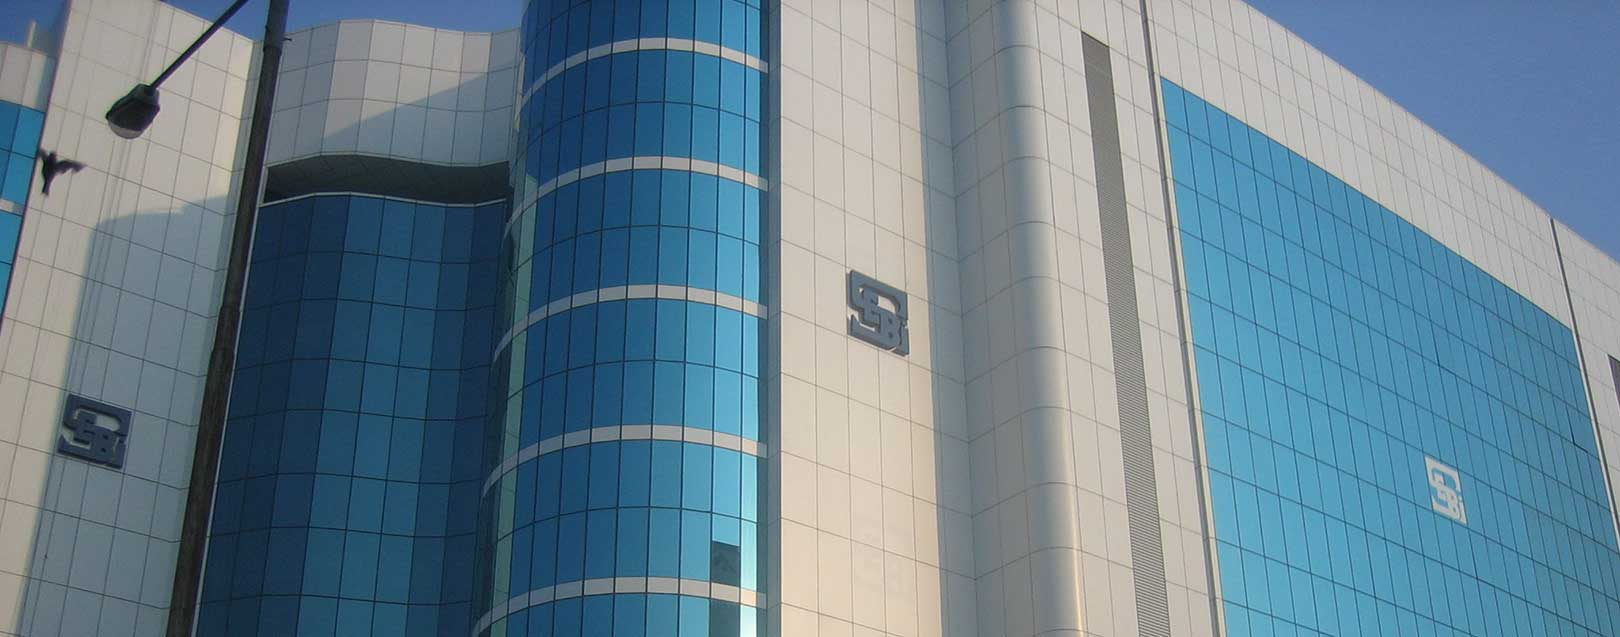 Sebi eases norms for FPIs, investment trusts; to curb PE misuse